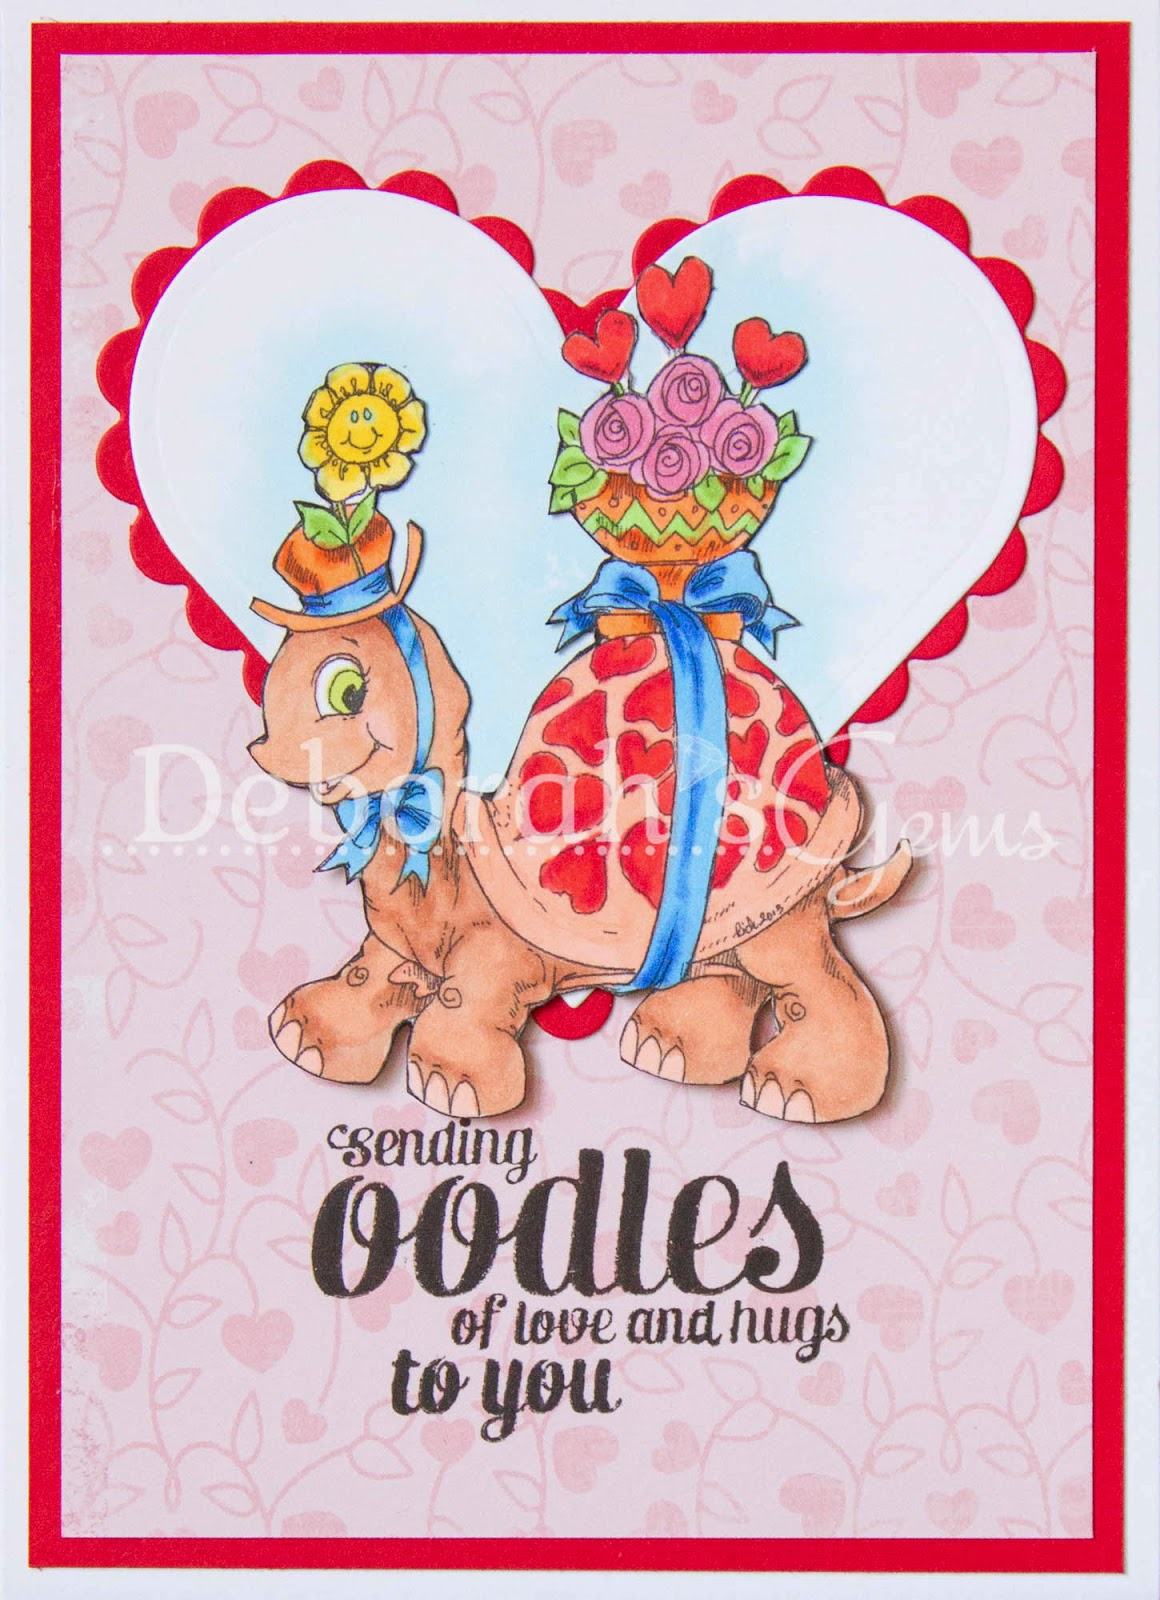 Oodles of love - photo by Deborah Frings - Deborah's Gems